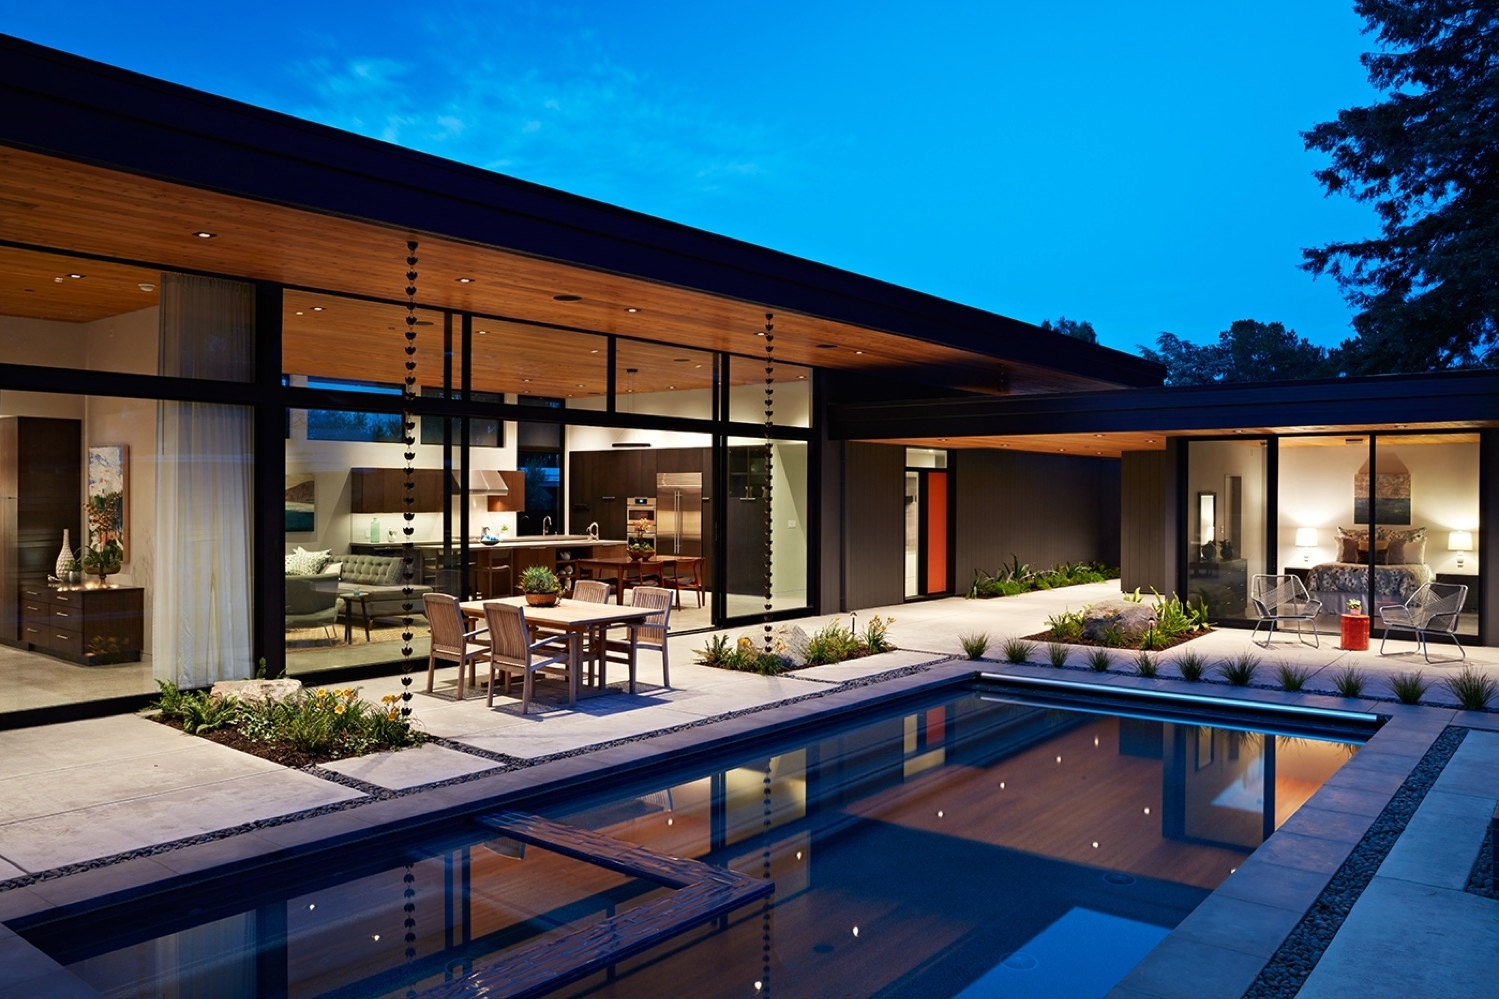 The Design Of This House In California - Was Inspired By The Original Mid-Century Modern Home It Replaced